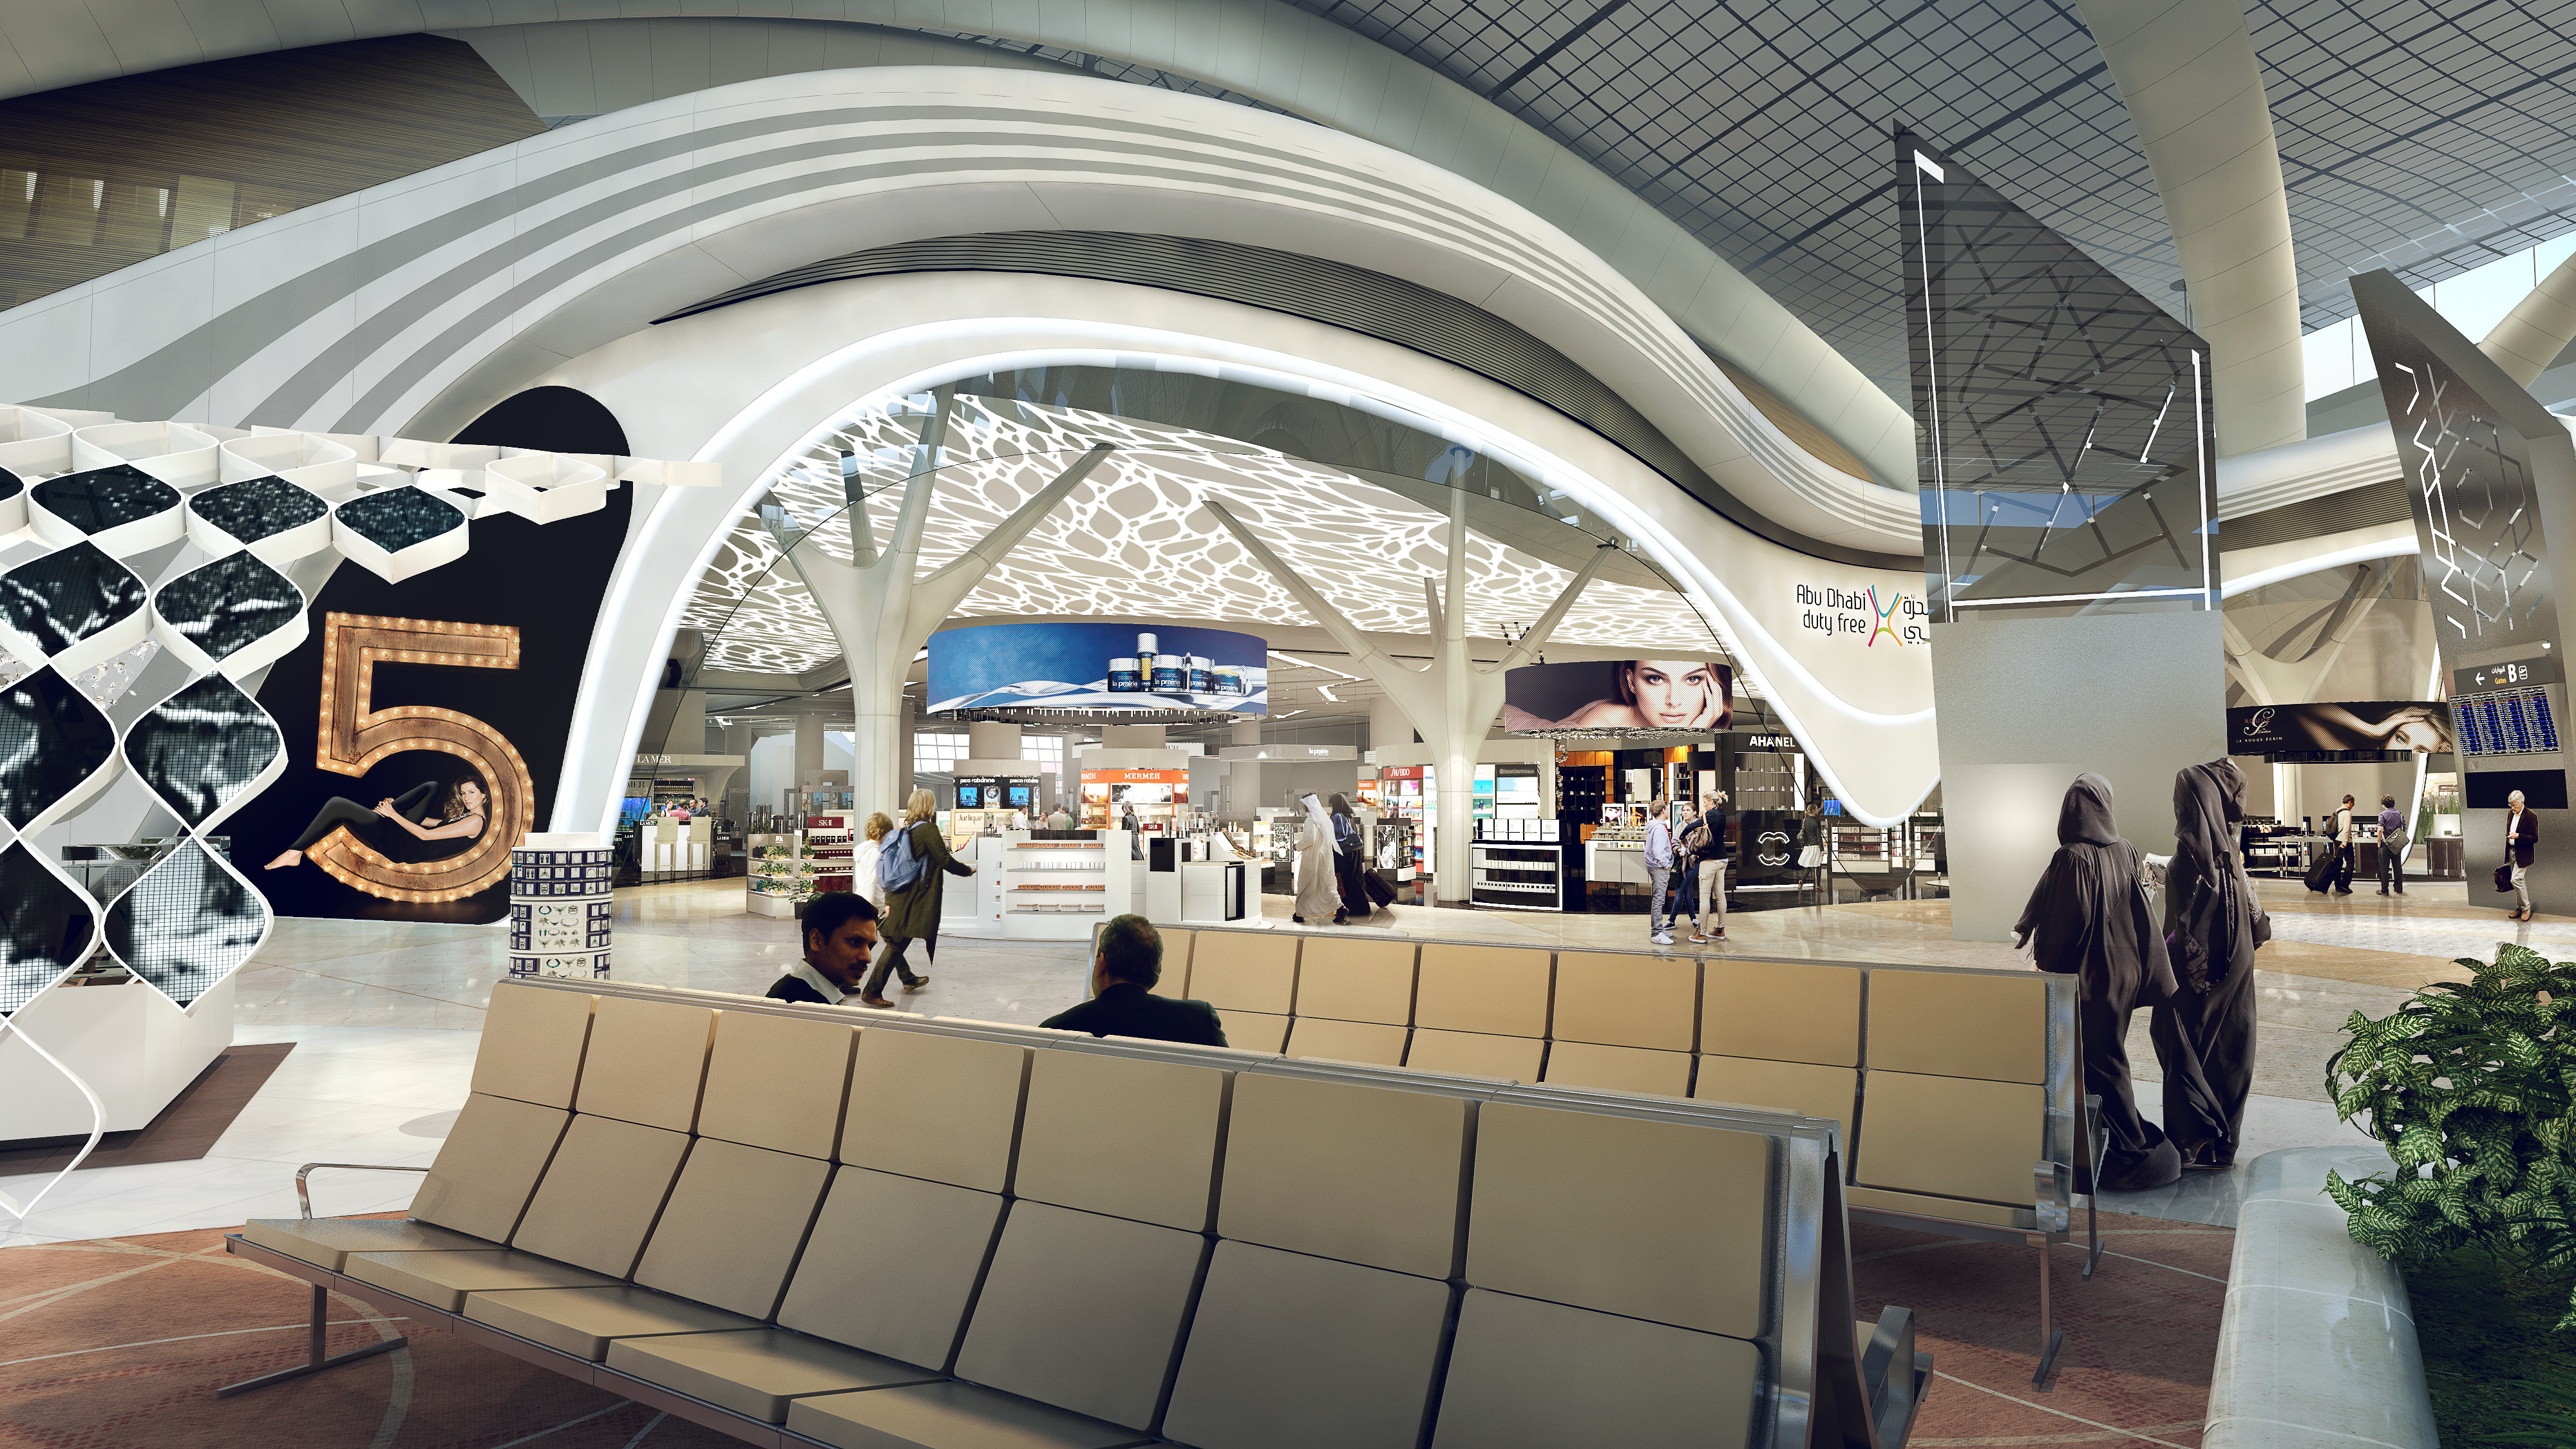 Adac awards midfield terminal duty free contracts for Hispano international decor abu dhabi